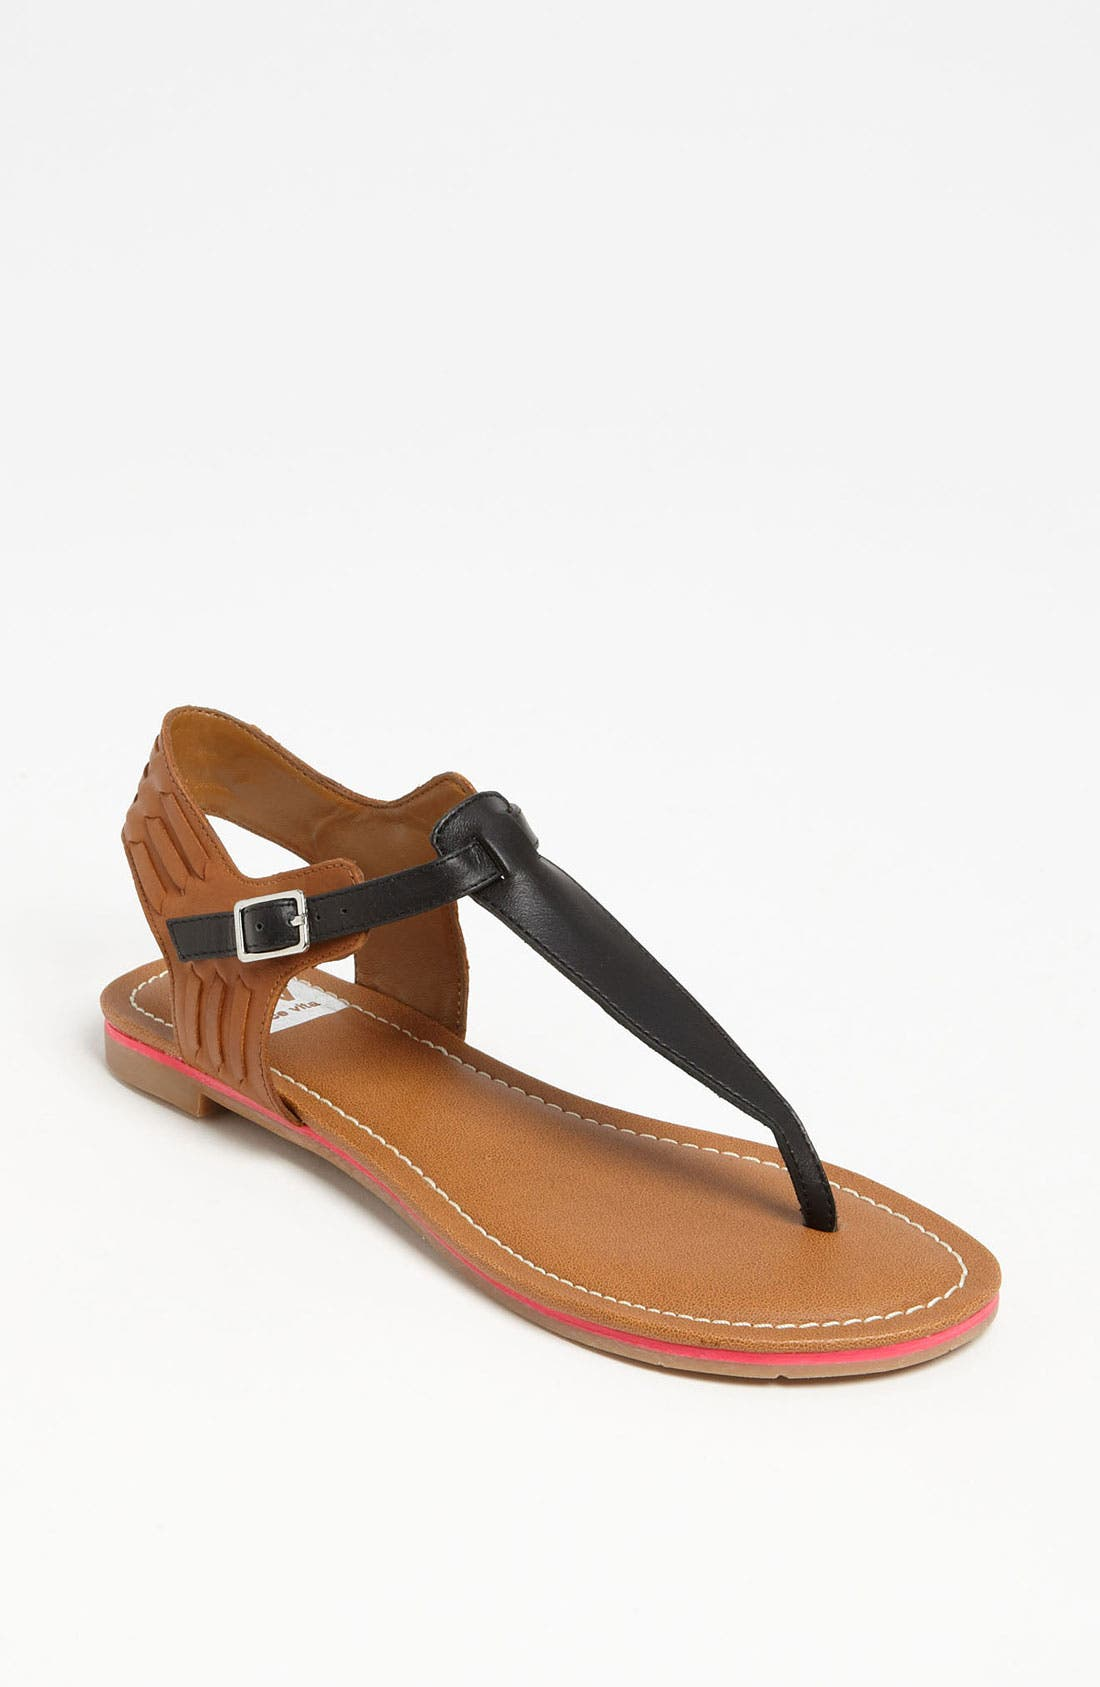 Alternate Image 1 Selected - DV by Dolce Vita 'Drayper' Sandal (Online Only)